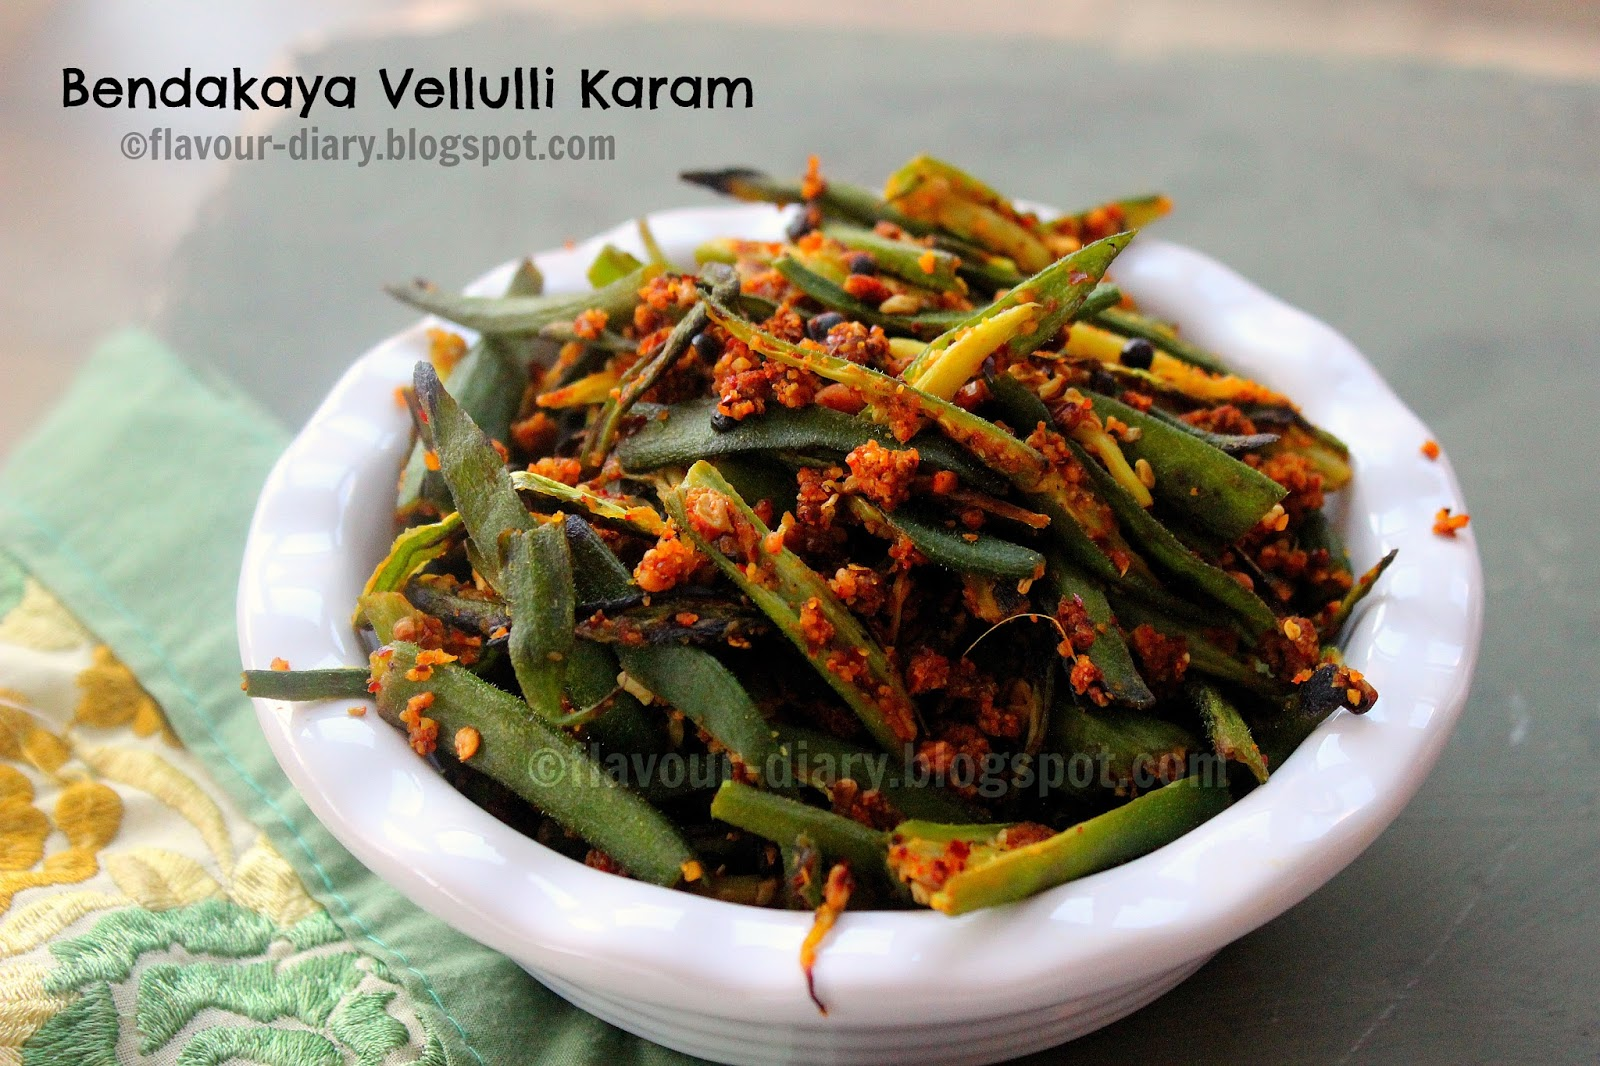 Bendakaya vellulli karam recipe okra in spicy garlic mix andhra bendakaya vellulli karam recipe okra in spicy garlic mix andhra cuisine vegetarian curry fry bhindi fry flavour diary forumfinder Image collections